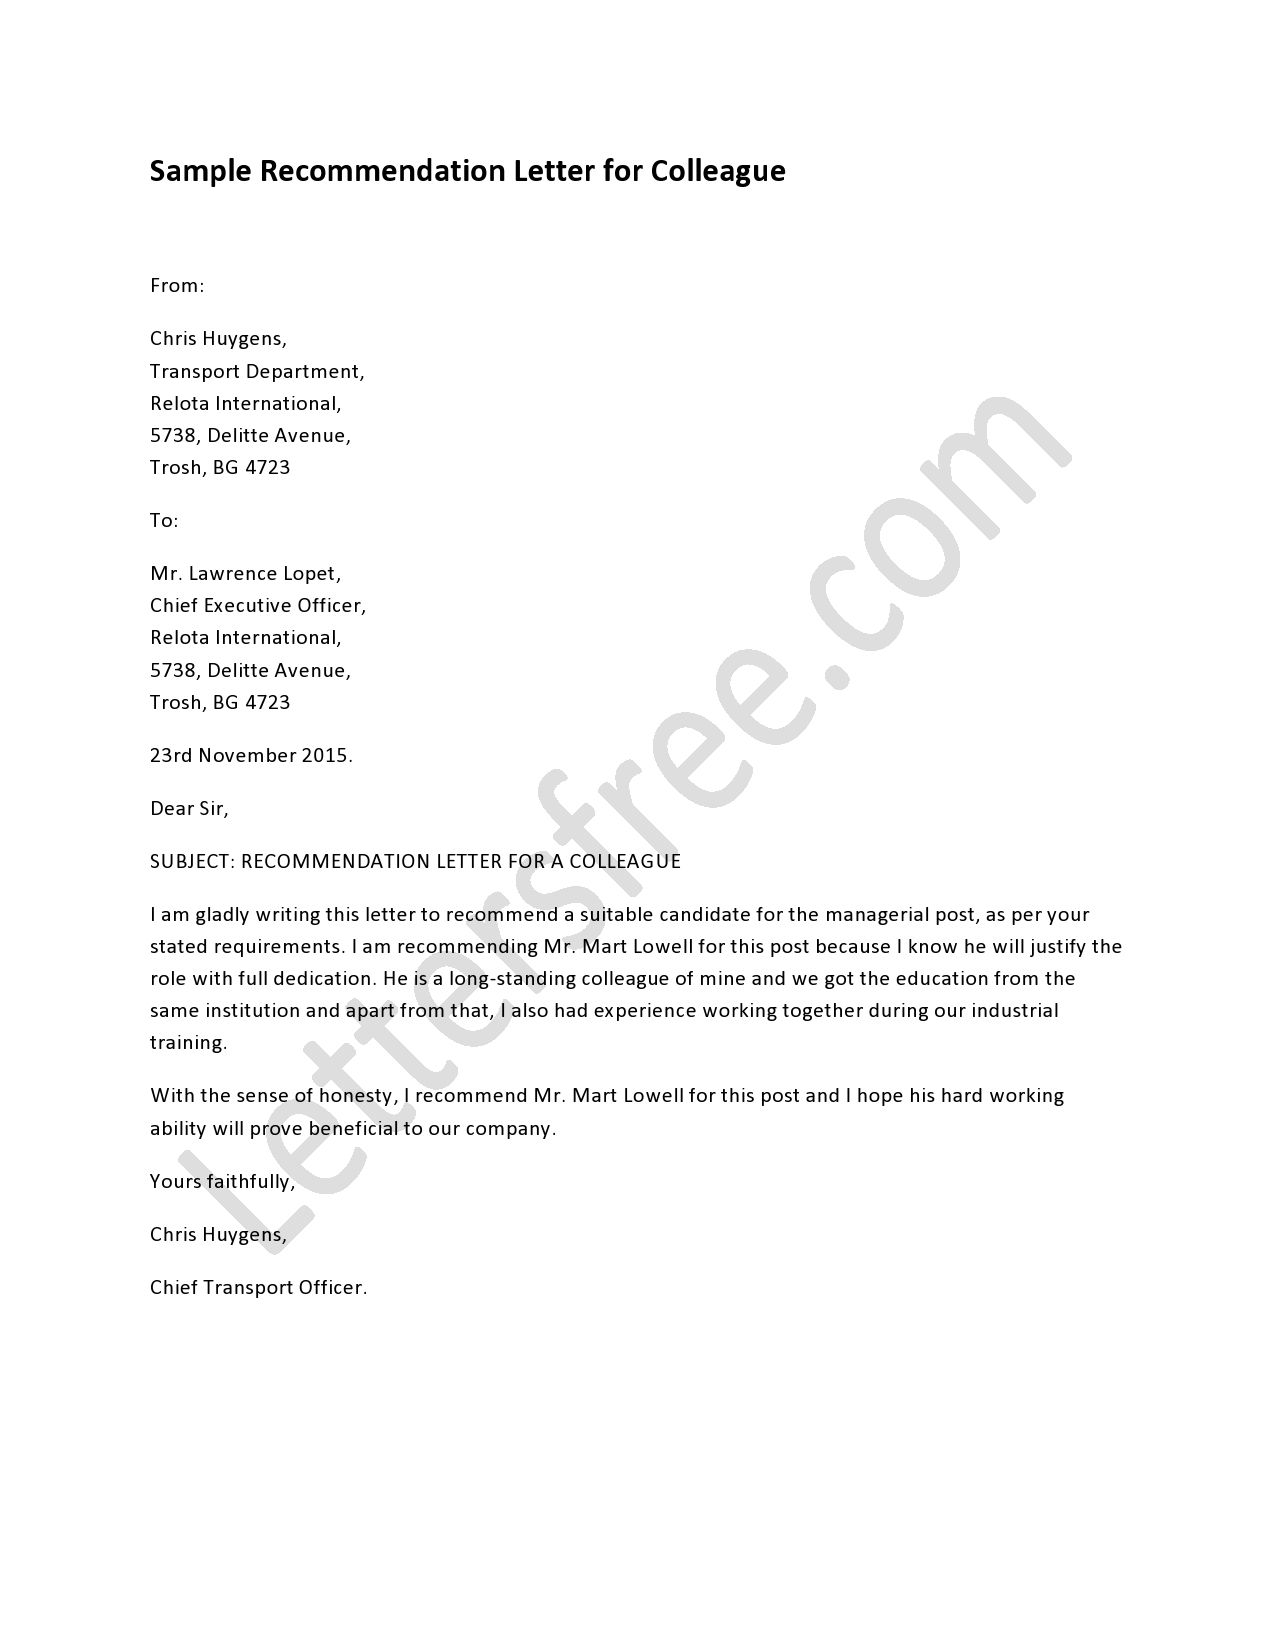 example of recommendation letter for colleague sample example of recommendation letter for colleague sample recommendation letter how to write a recommendation